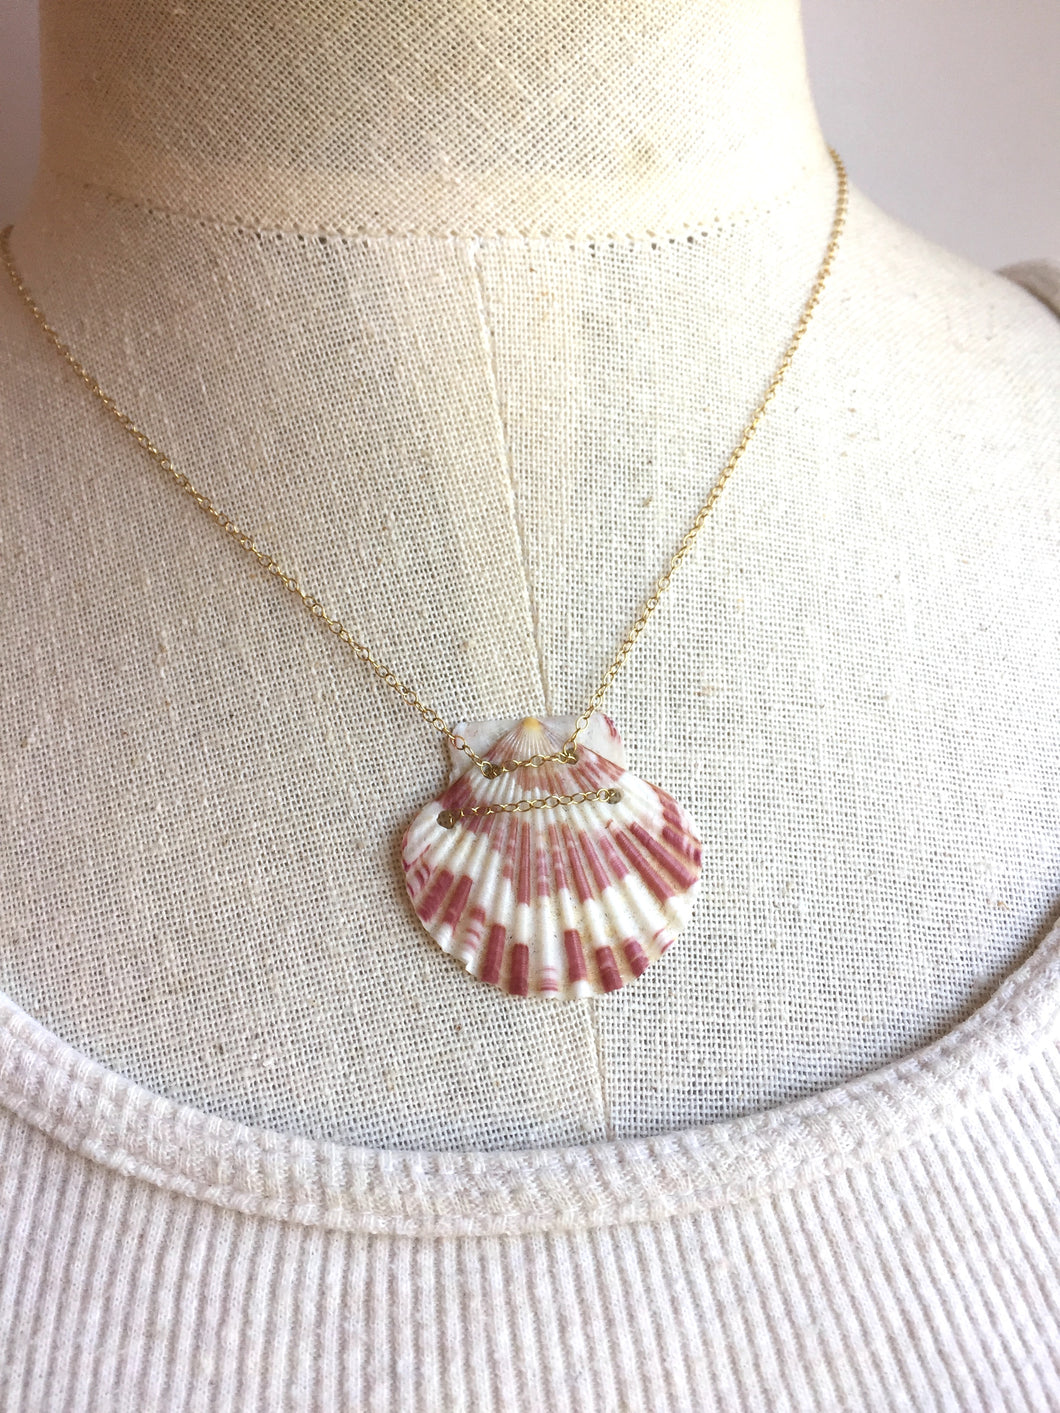 Hawaii Shell Necklace, red shell necklace